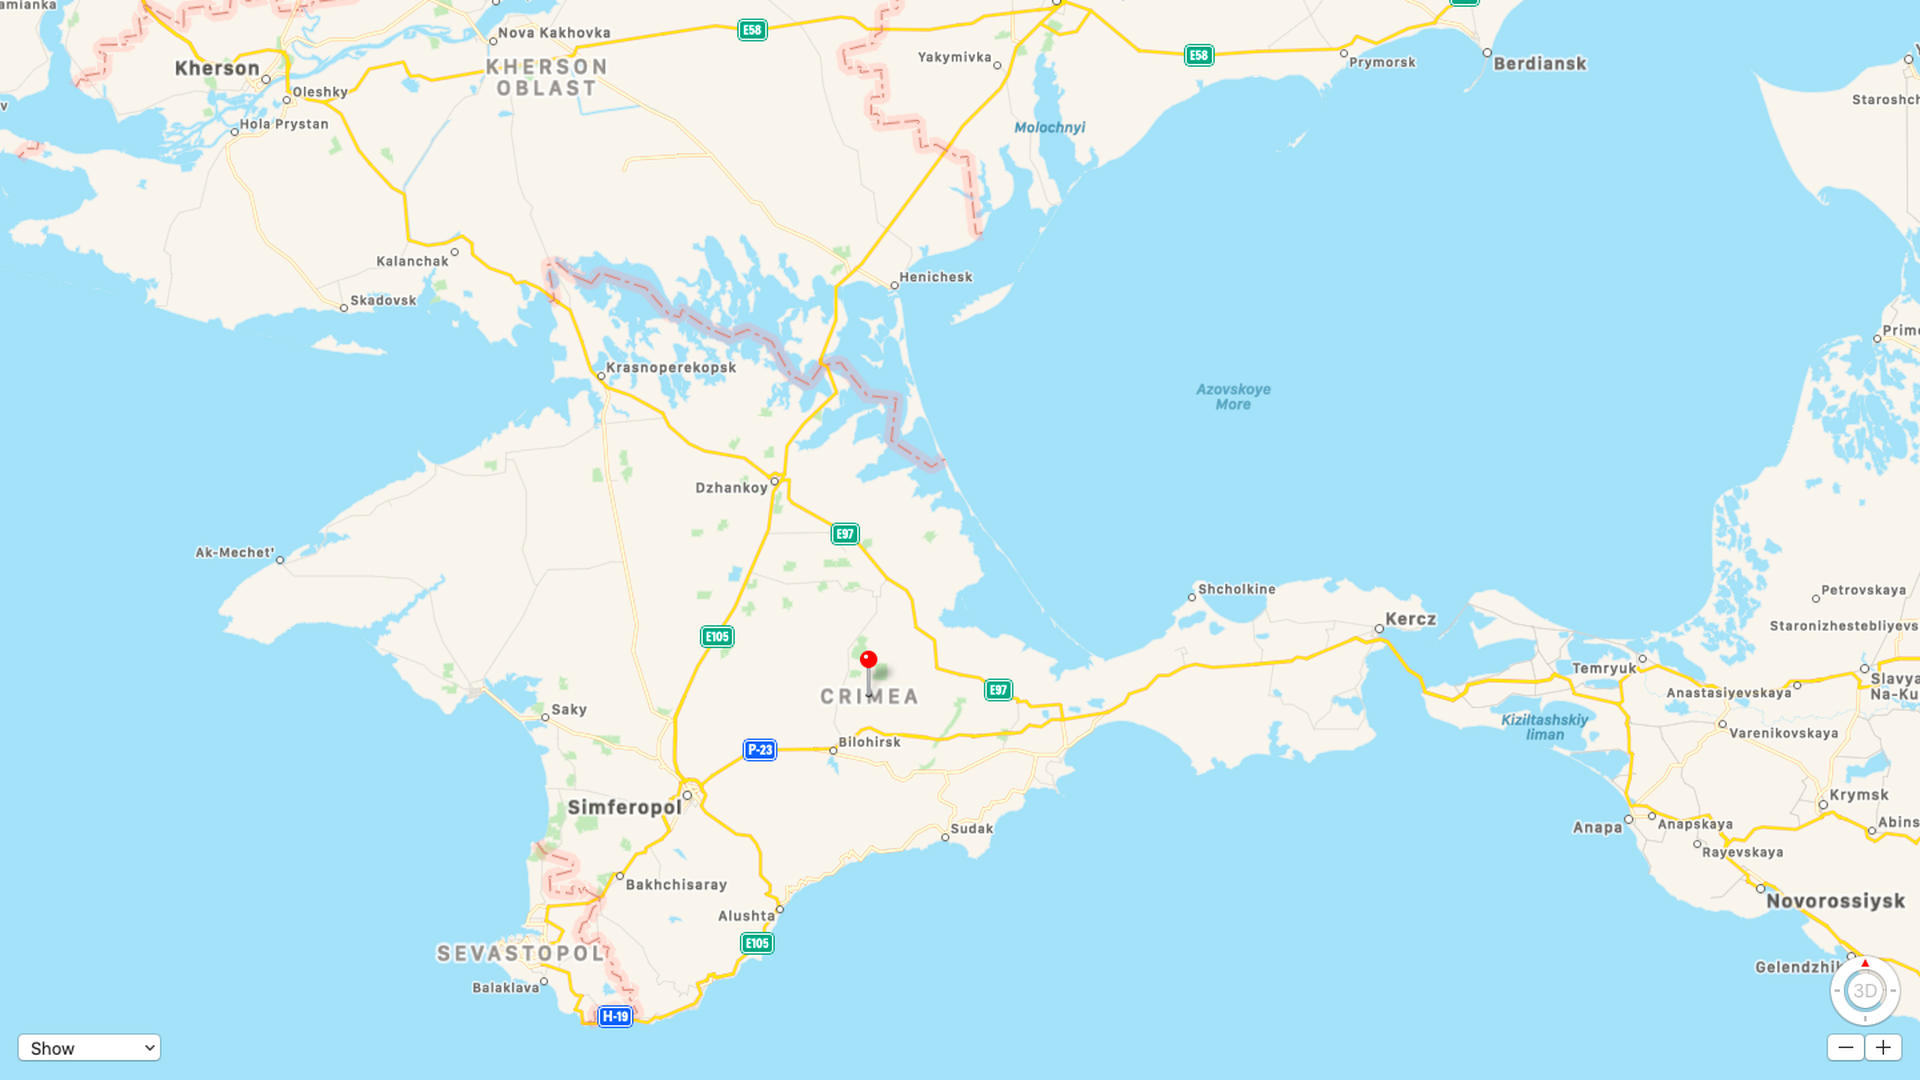 Crimea viewed on Apple maps outside of Russia